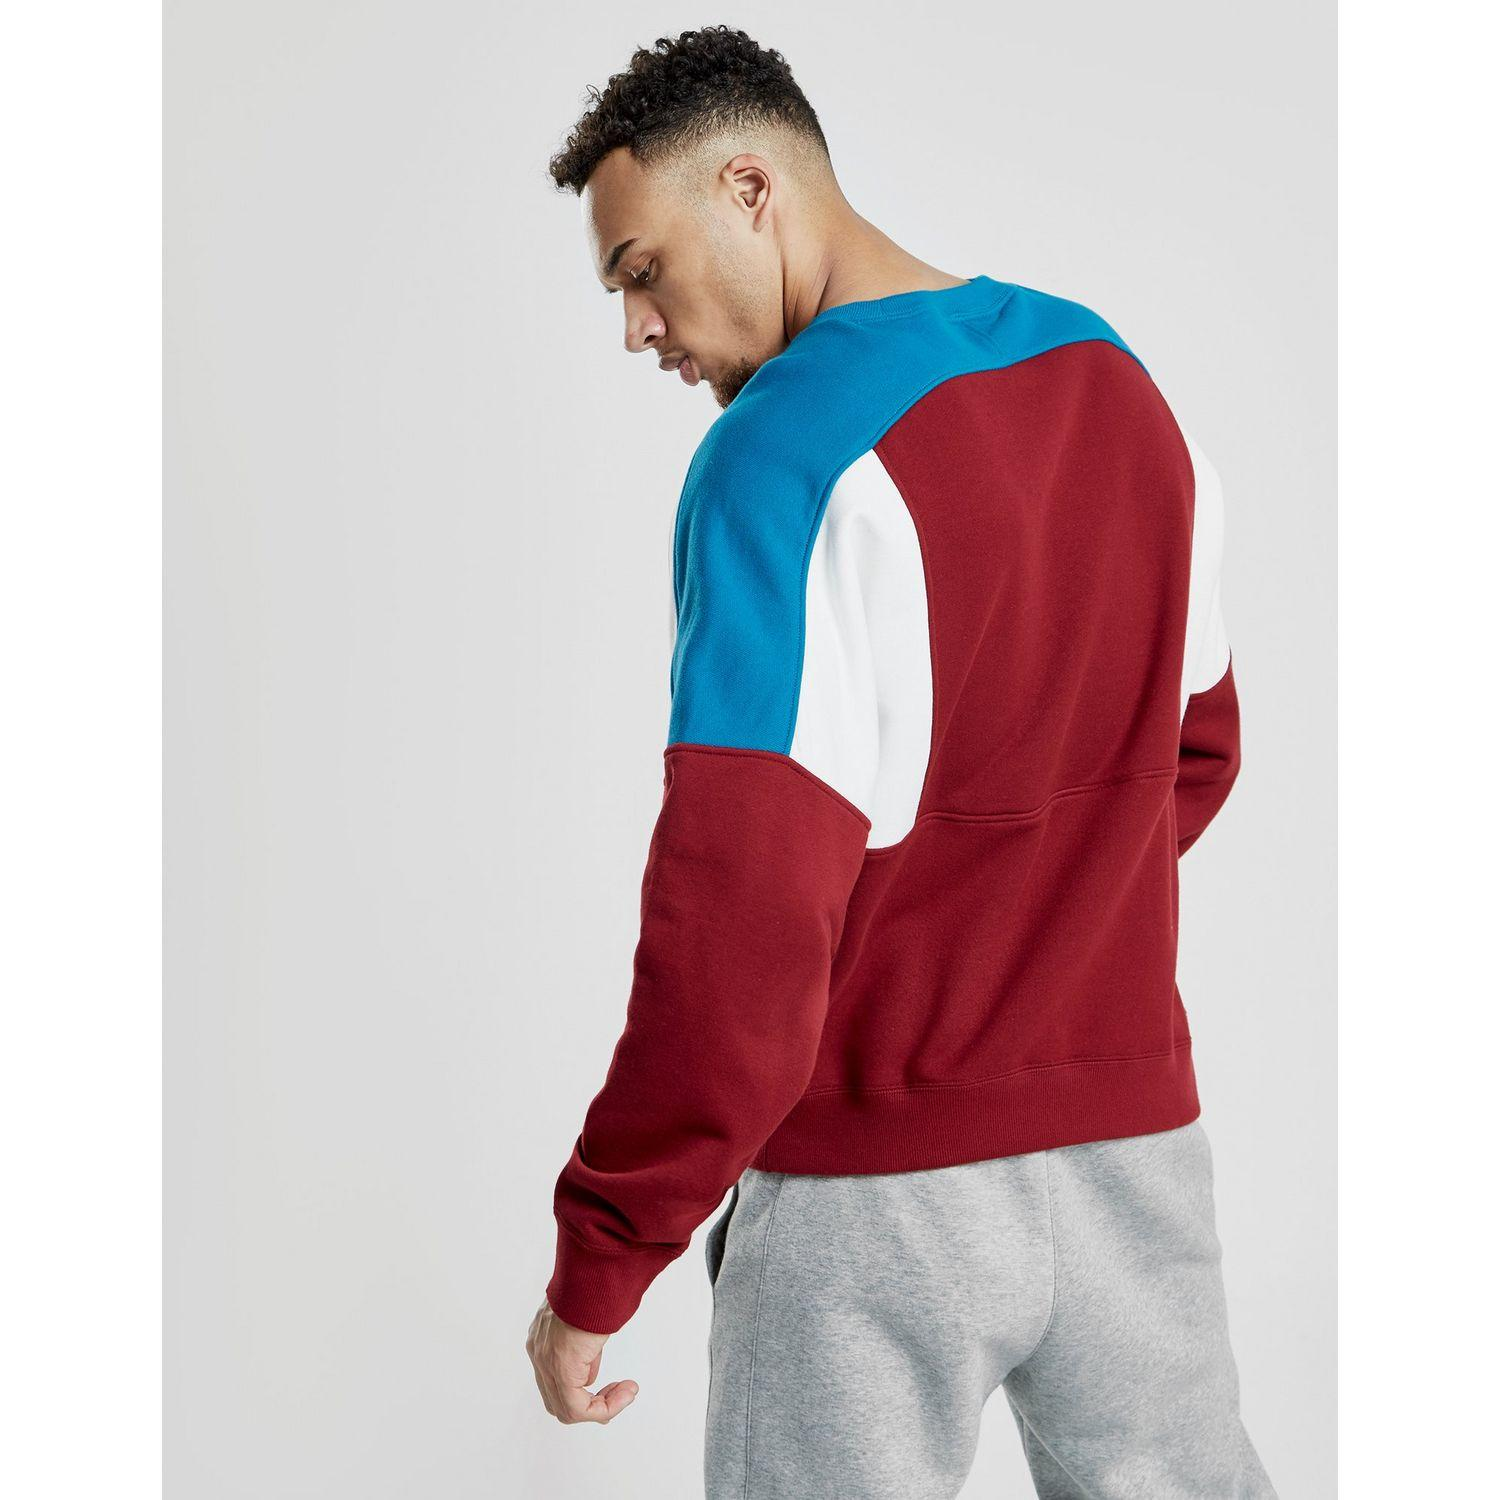 medio litro cosa galope  Nike Cotton Reissue Crew Sweatshirt in Red/Blue (Red) for Men - Lyst